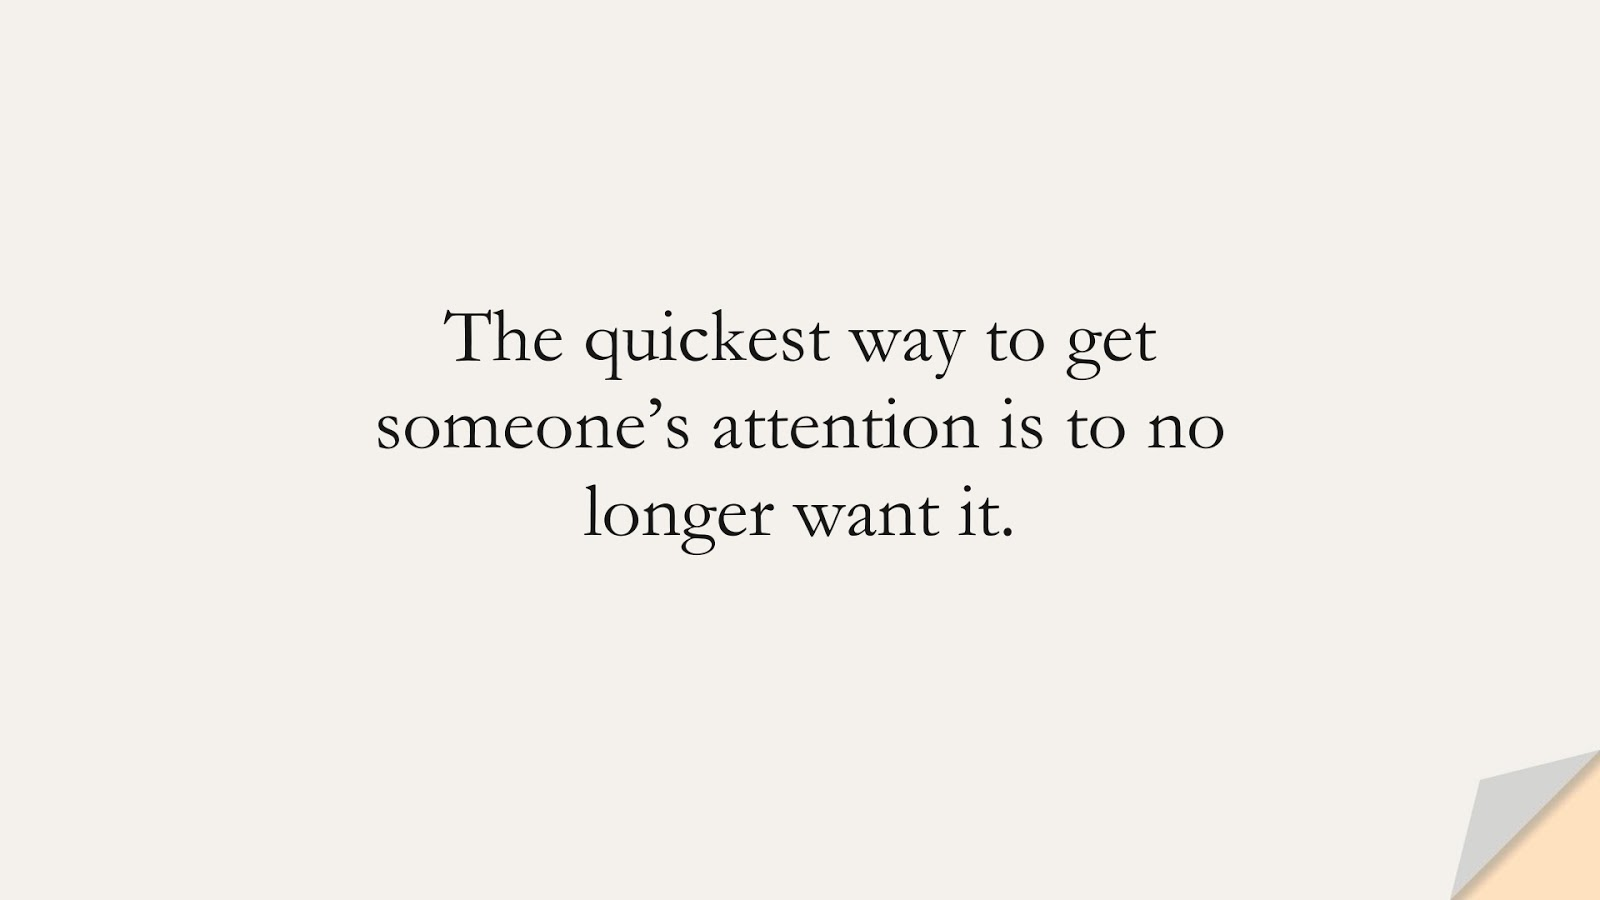 The quickest way to get someone's attention is to no longer want it.FALSE